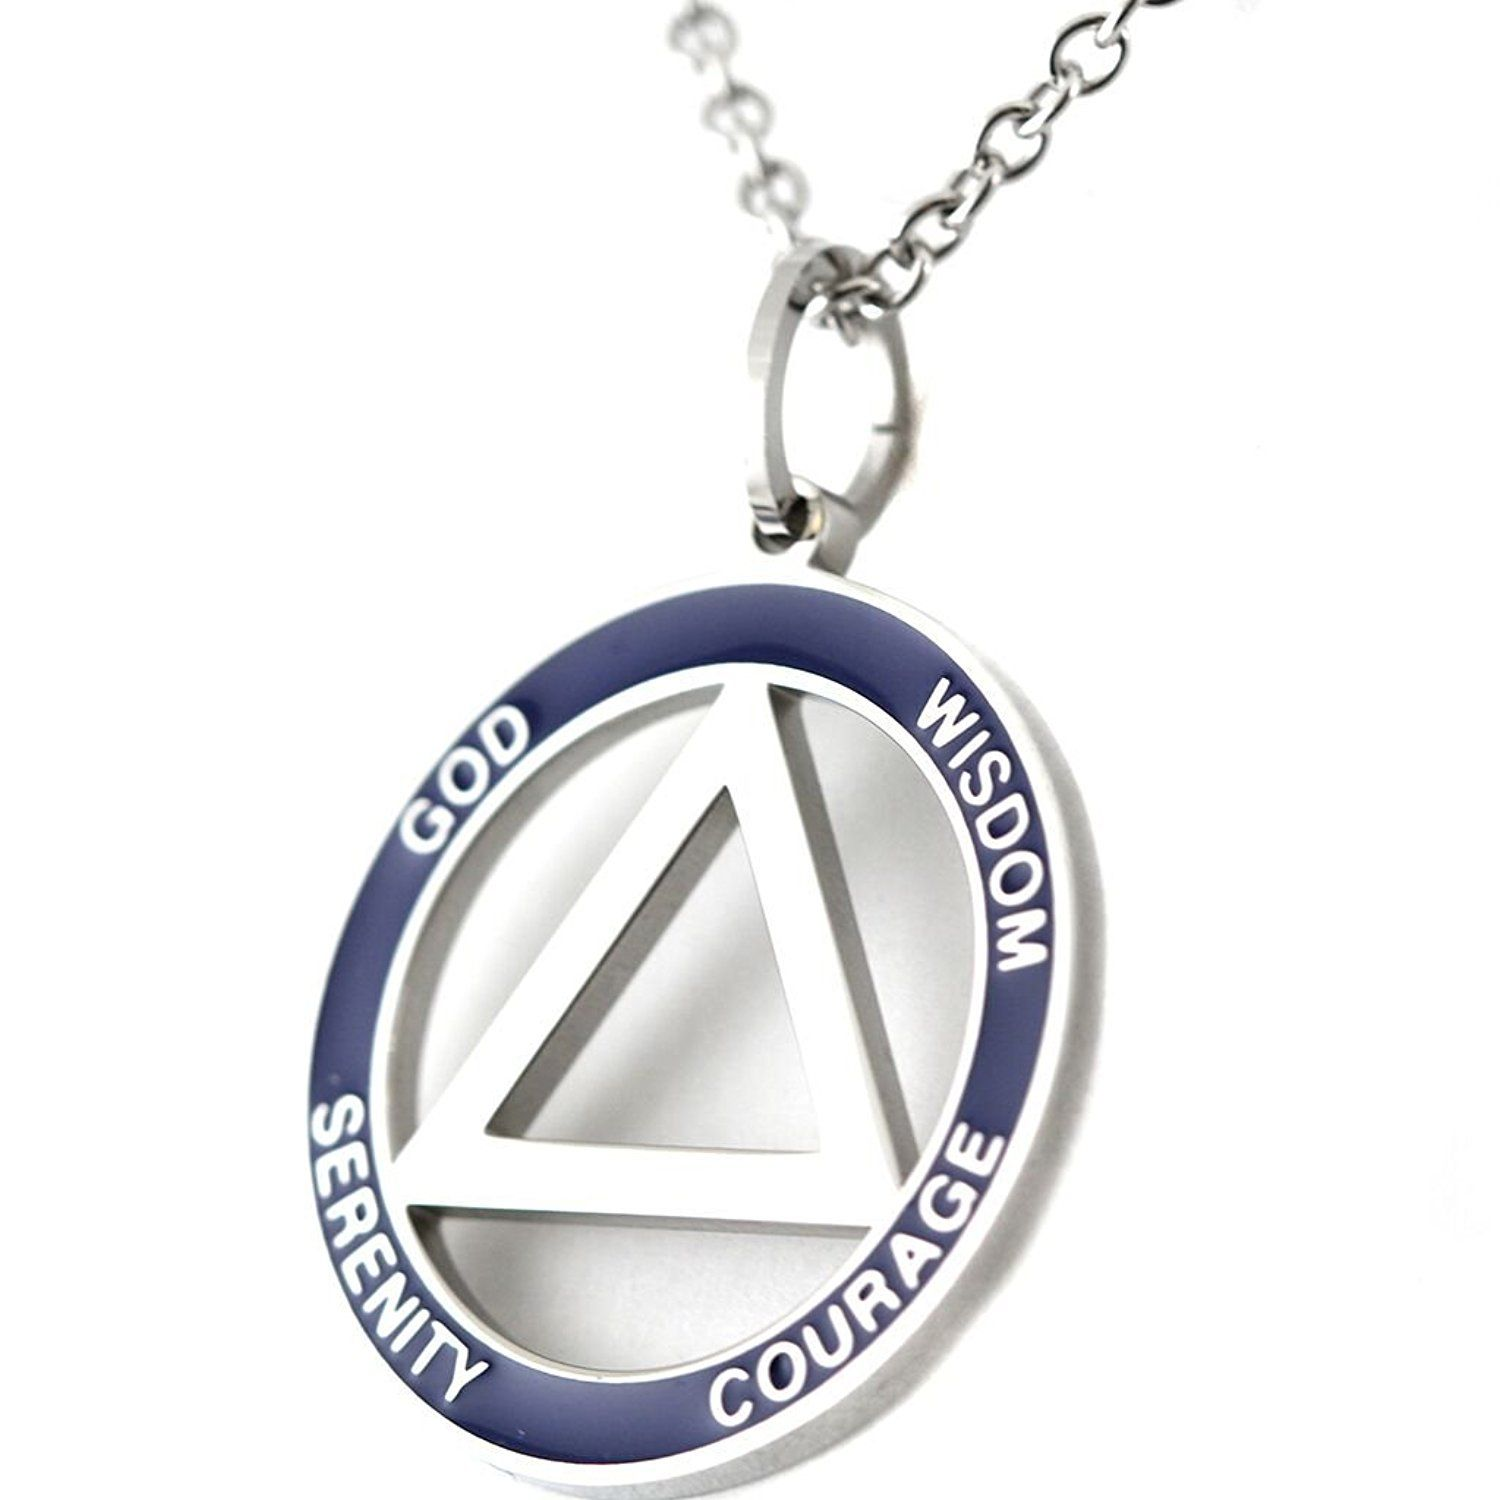 12 Step Recovery Pendant Stainless Steel Aa Symbol Necklace Serenity